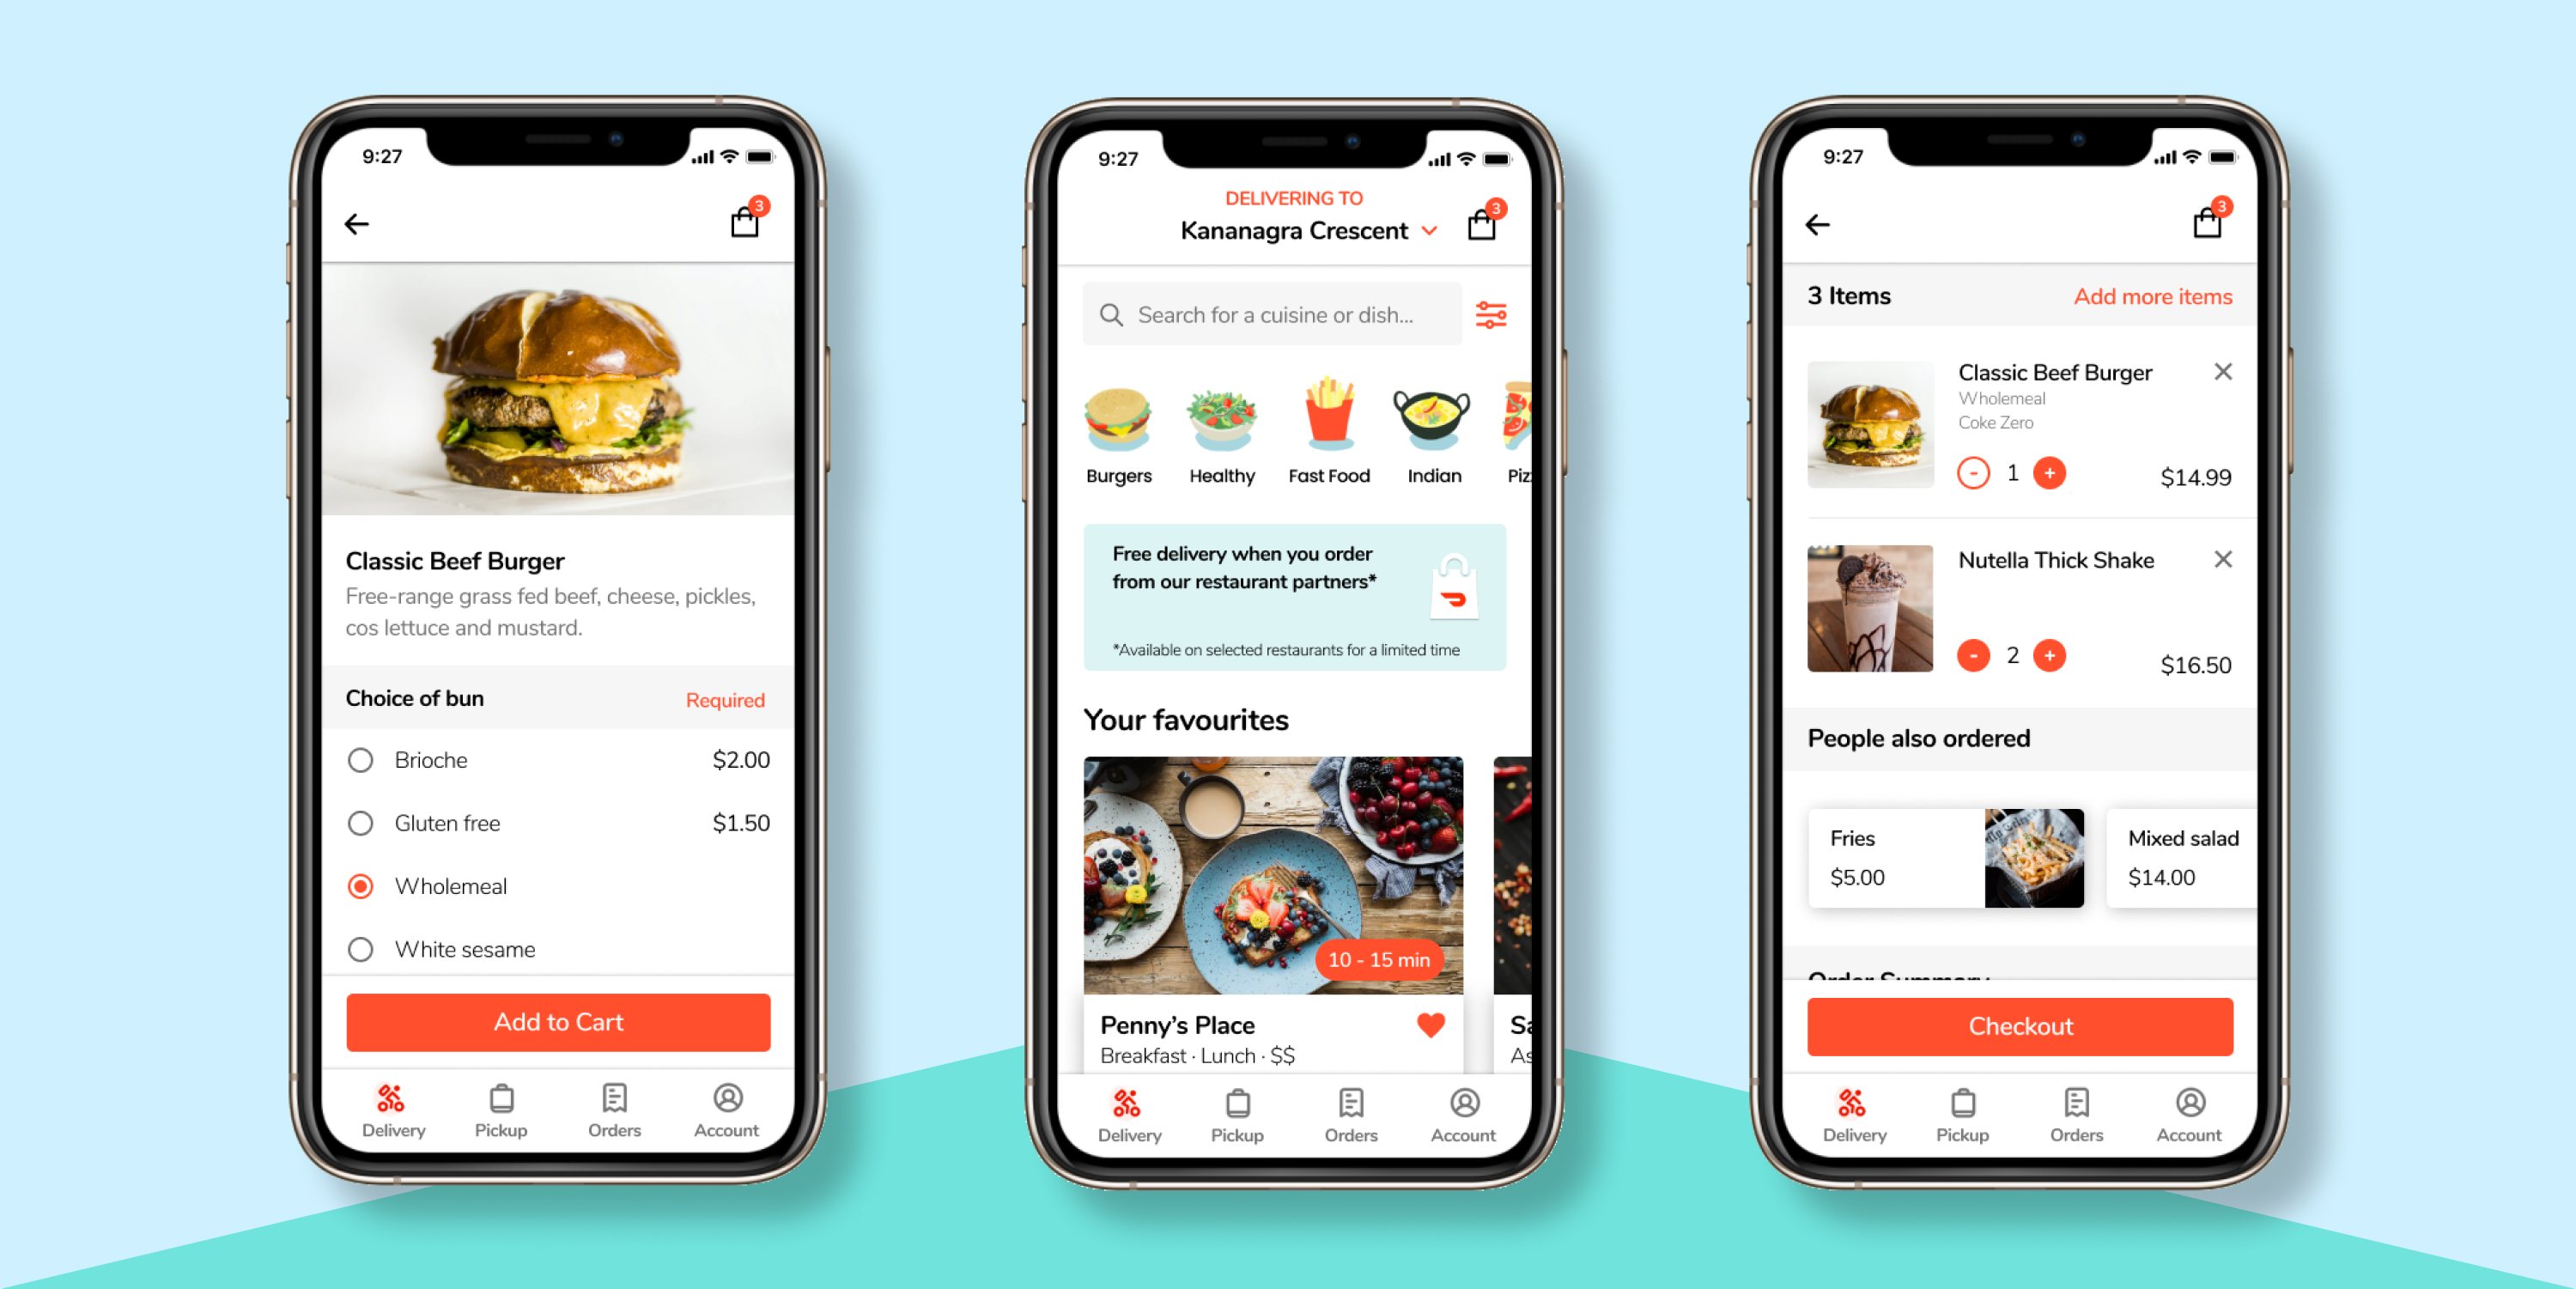 Redesigning Doordash To Create An Improved Digital Food Ordering Experience By Ashleigh Ryan Aug 2020 Ux Collective Ux Collective